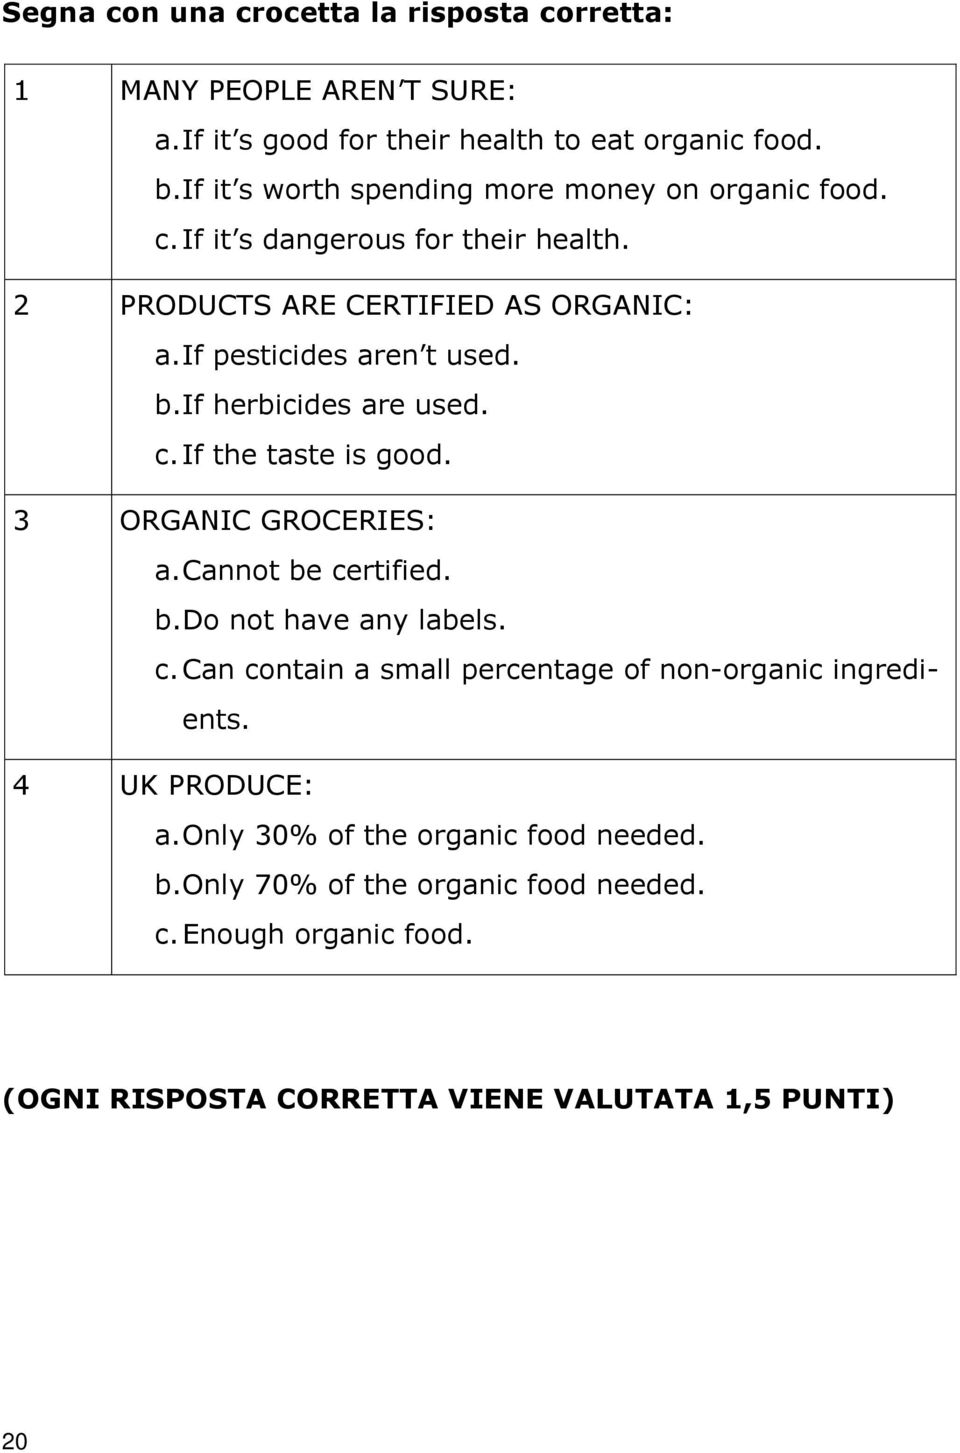 If herbicides are used. c. If the taste is good. 3 ORGANIC GROCERIES: a. Cannot be certified. b. Do not have any labels. c. Can contain a small percentage of non-organic ingredients.